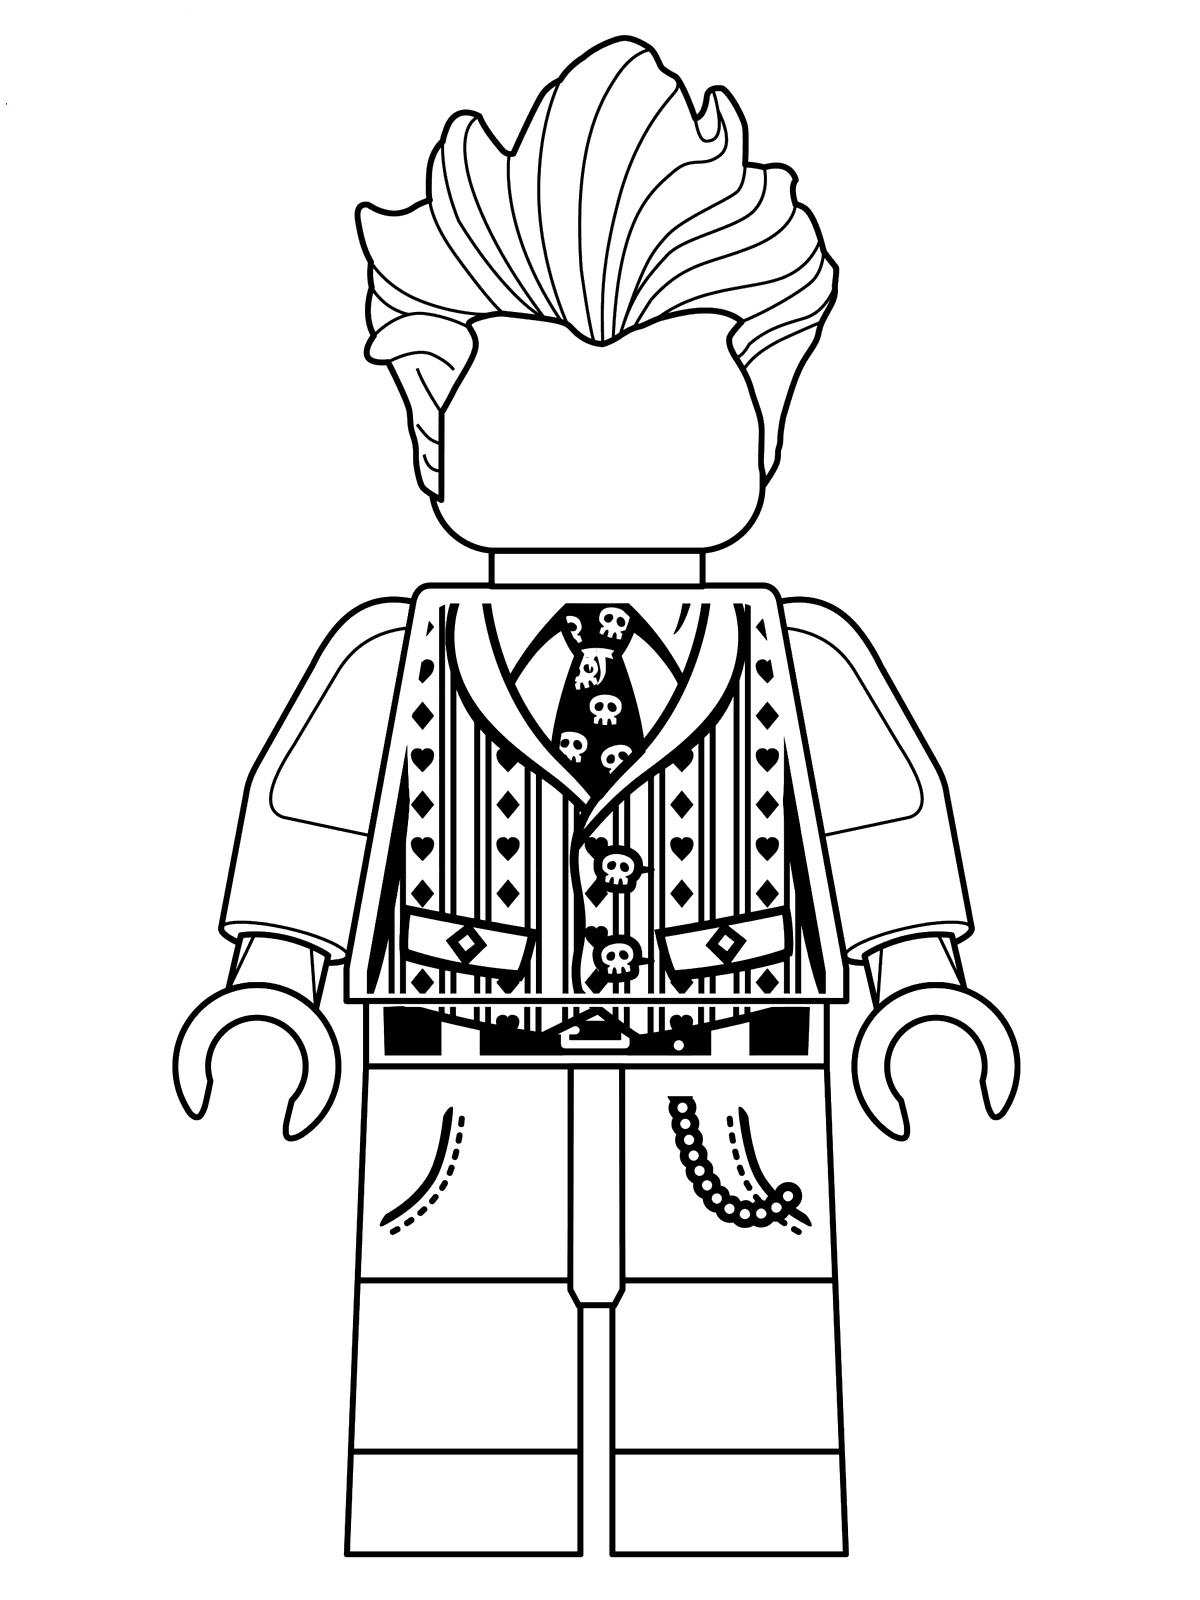 lego joker coloring pages joker drawing for kids at getdrawings free download coloring lego joker pages